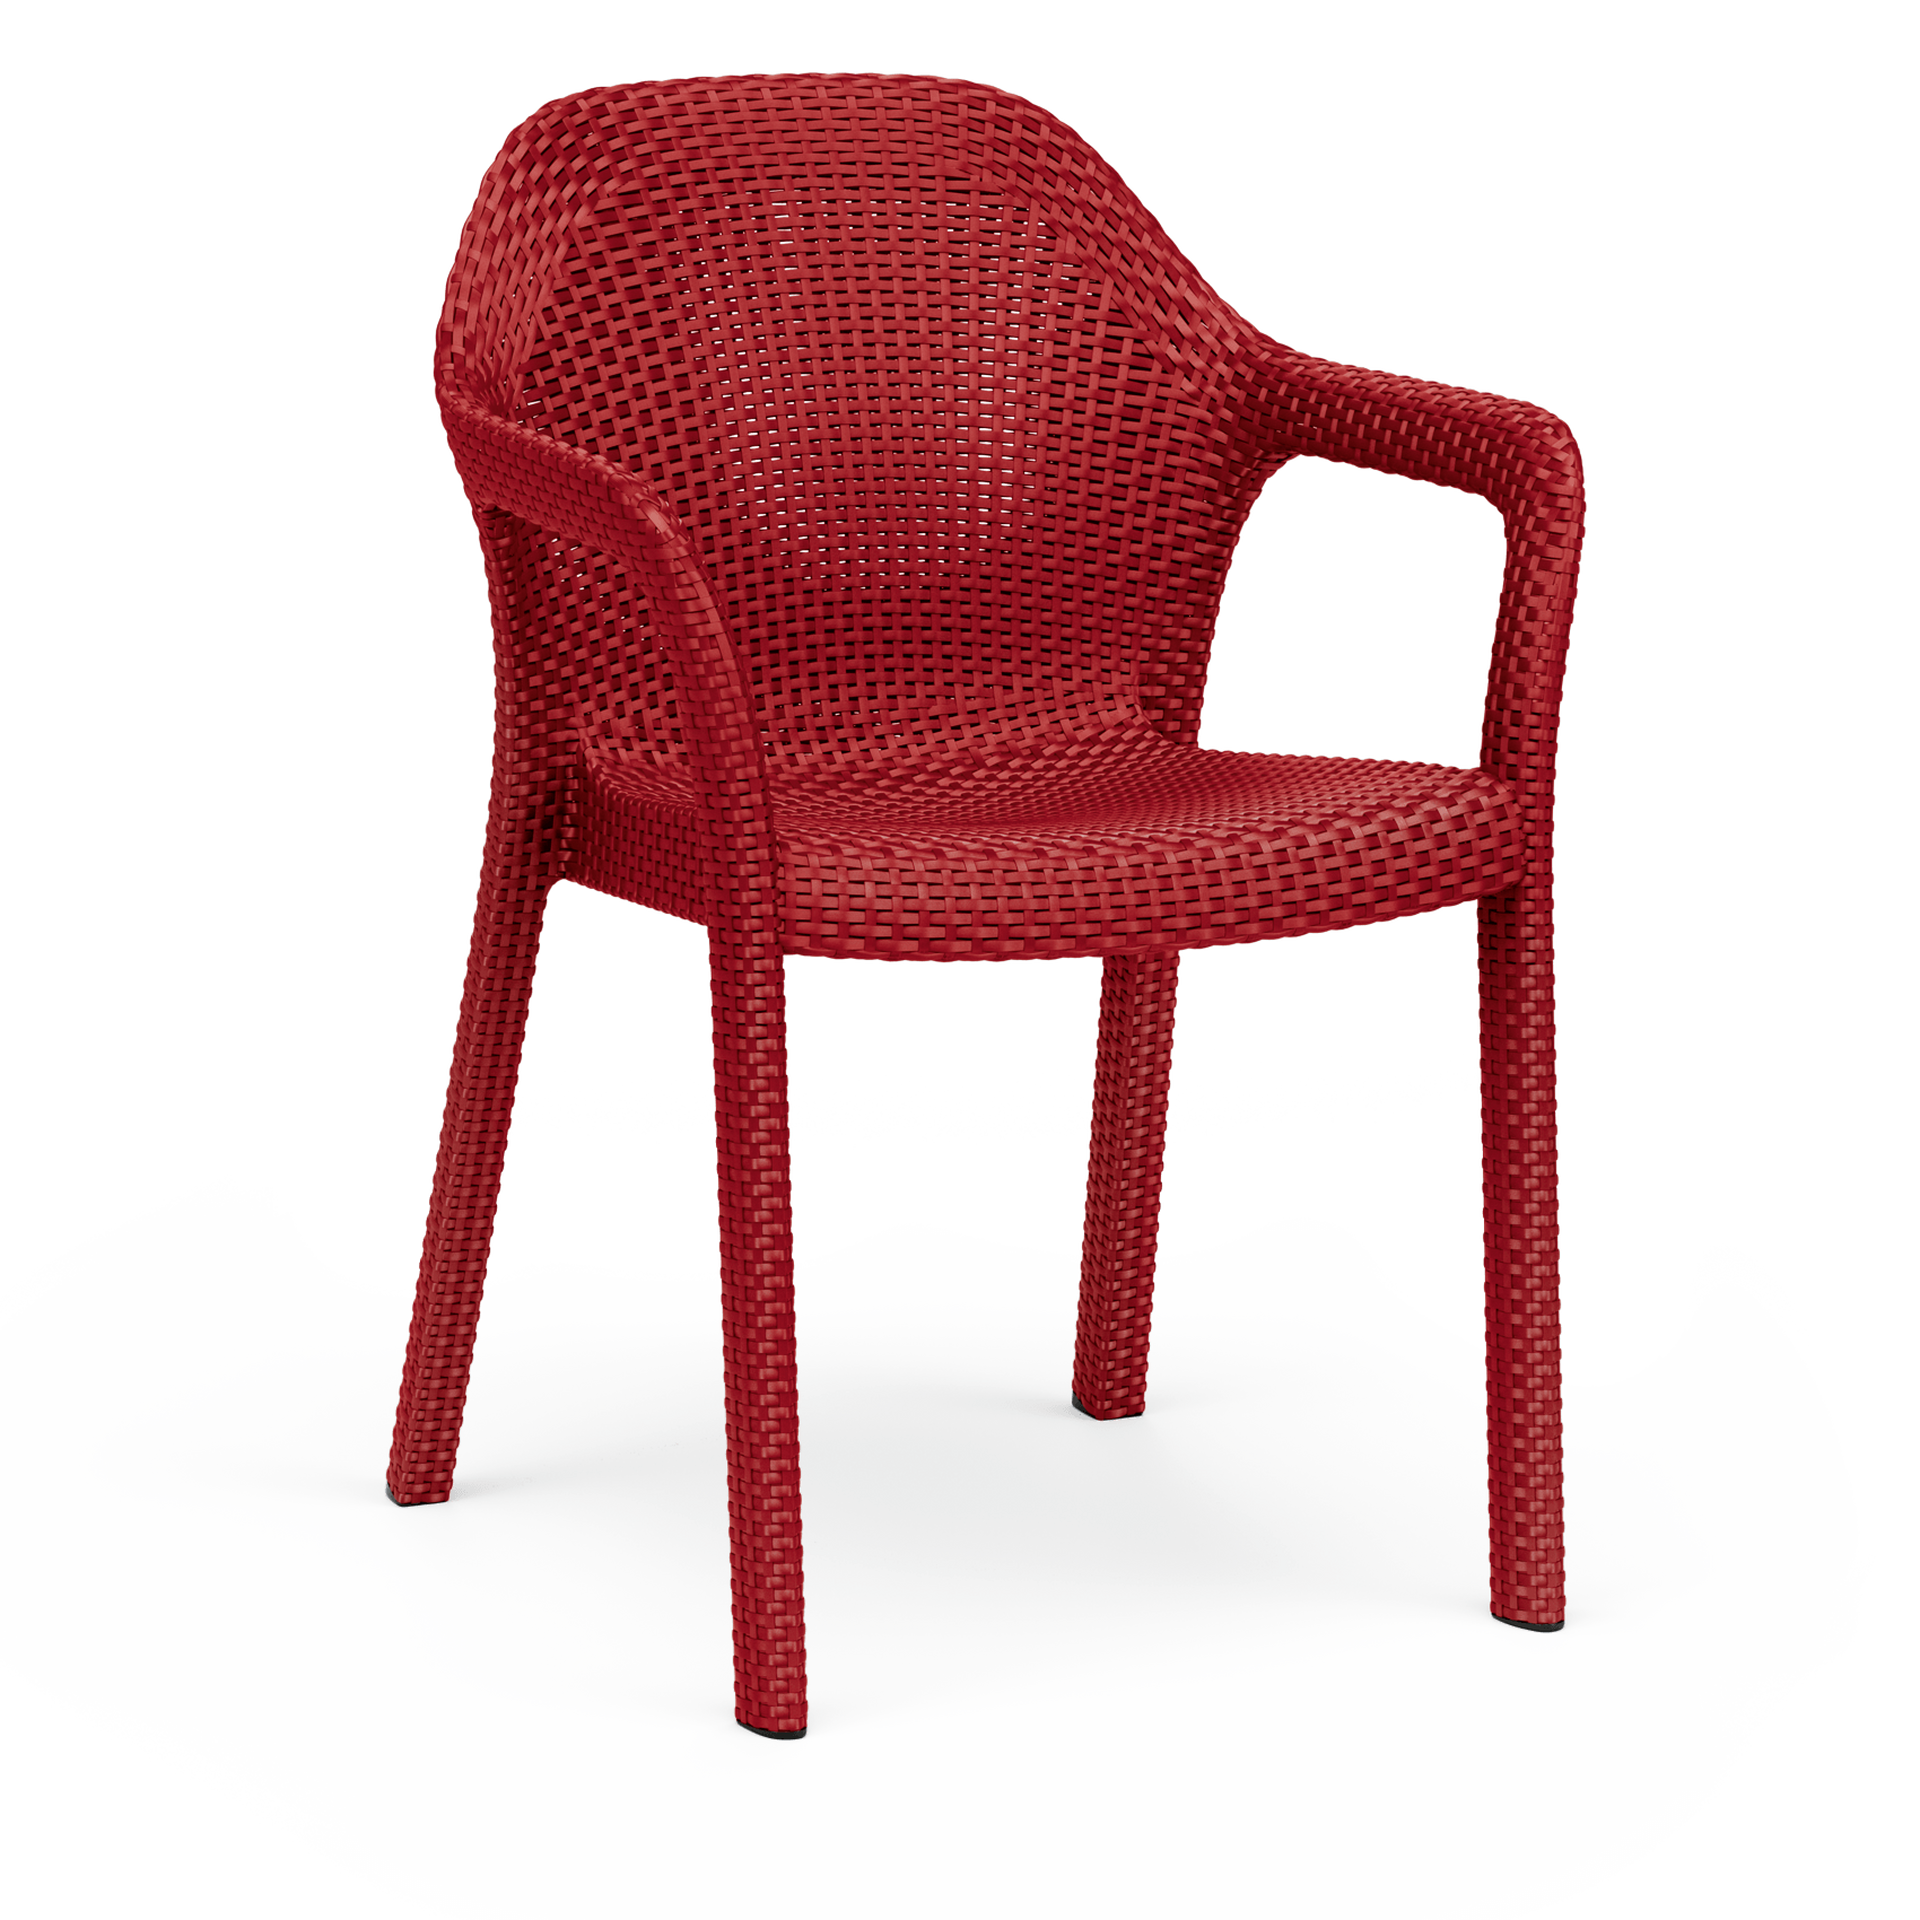 Chair scarlet red